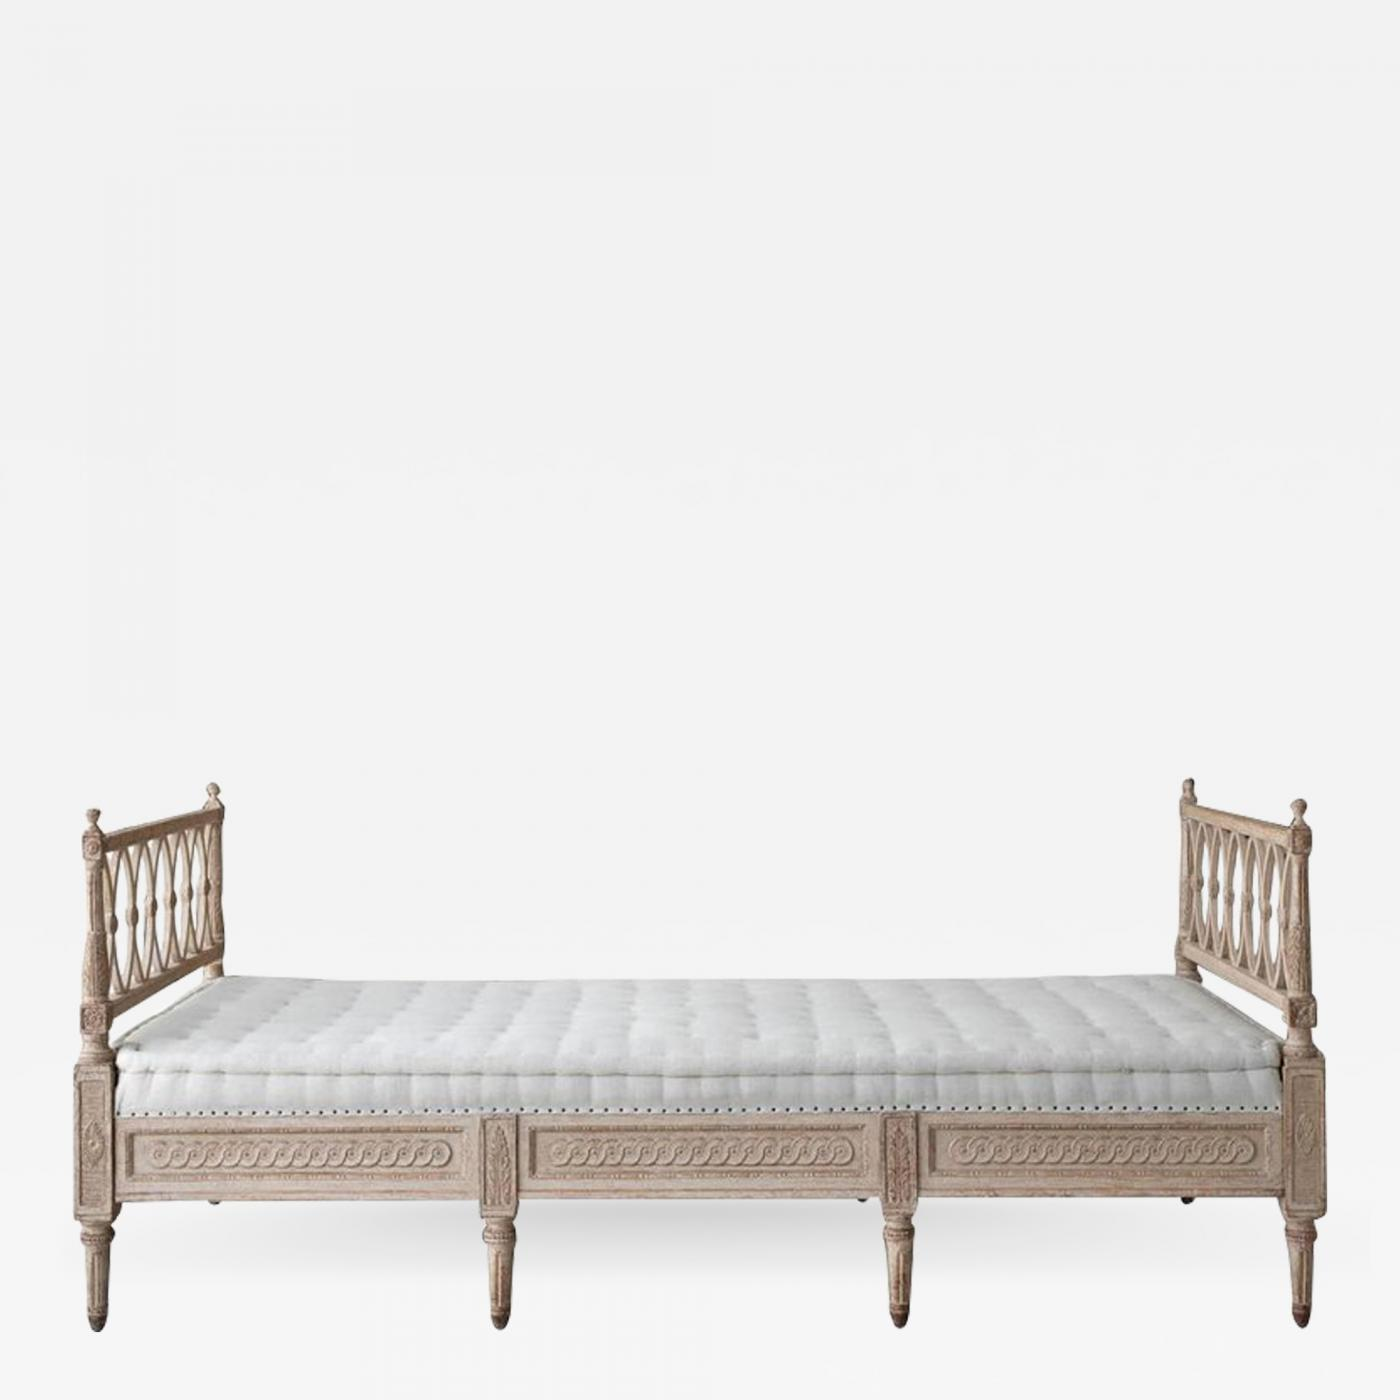 Sensational Swedish Daybed Sofa In The Gustavian Style Squirreltailoven Fun Painted Chair Ideas Images Squirreltailovenorg